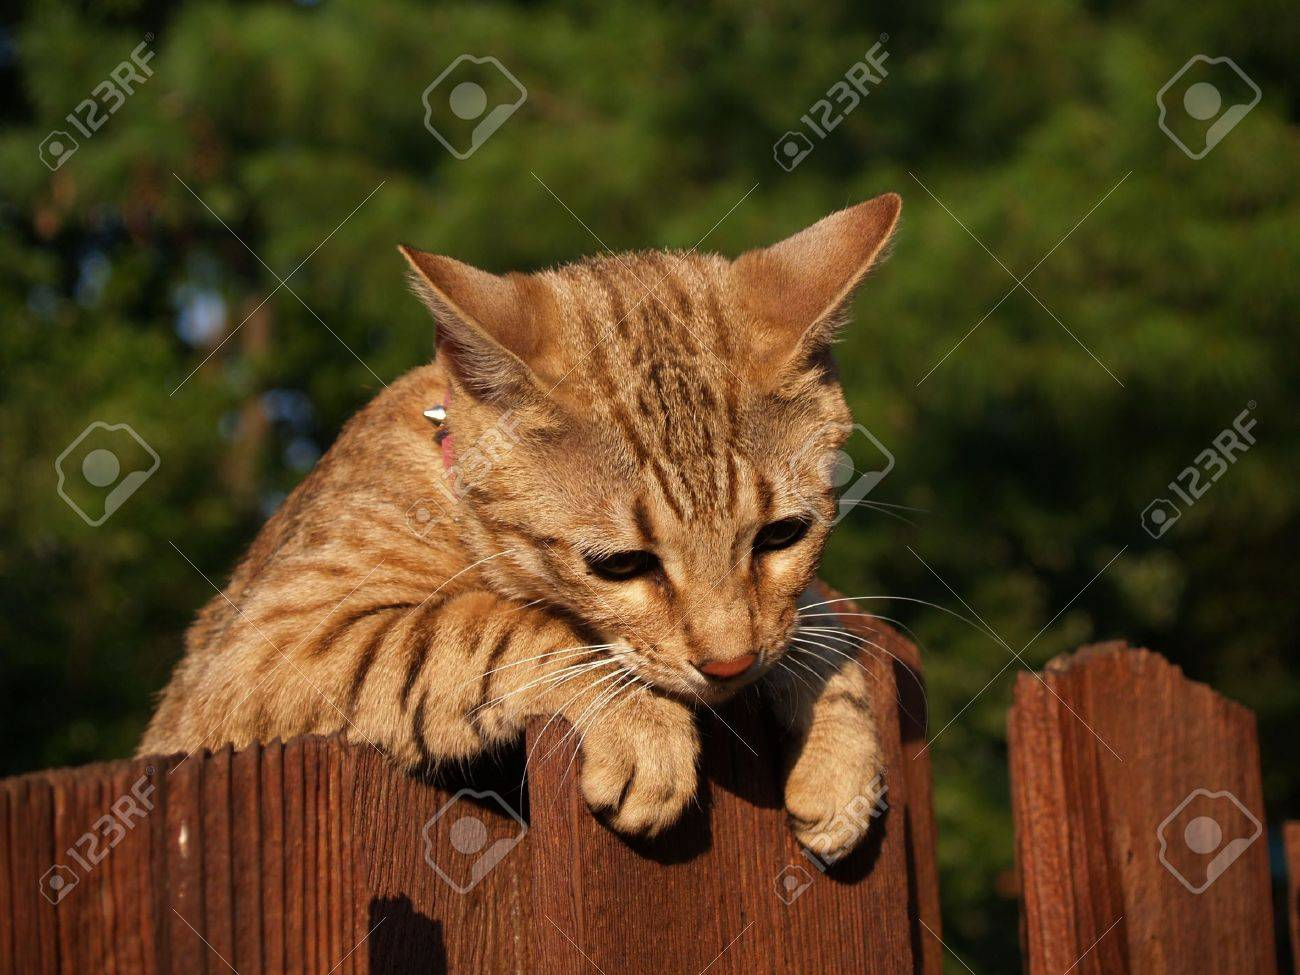 A striped gold colored female Serval Savannah cat looking down over a wooden fence wearing a pink collar. - 5458523